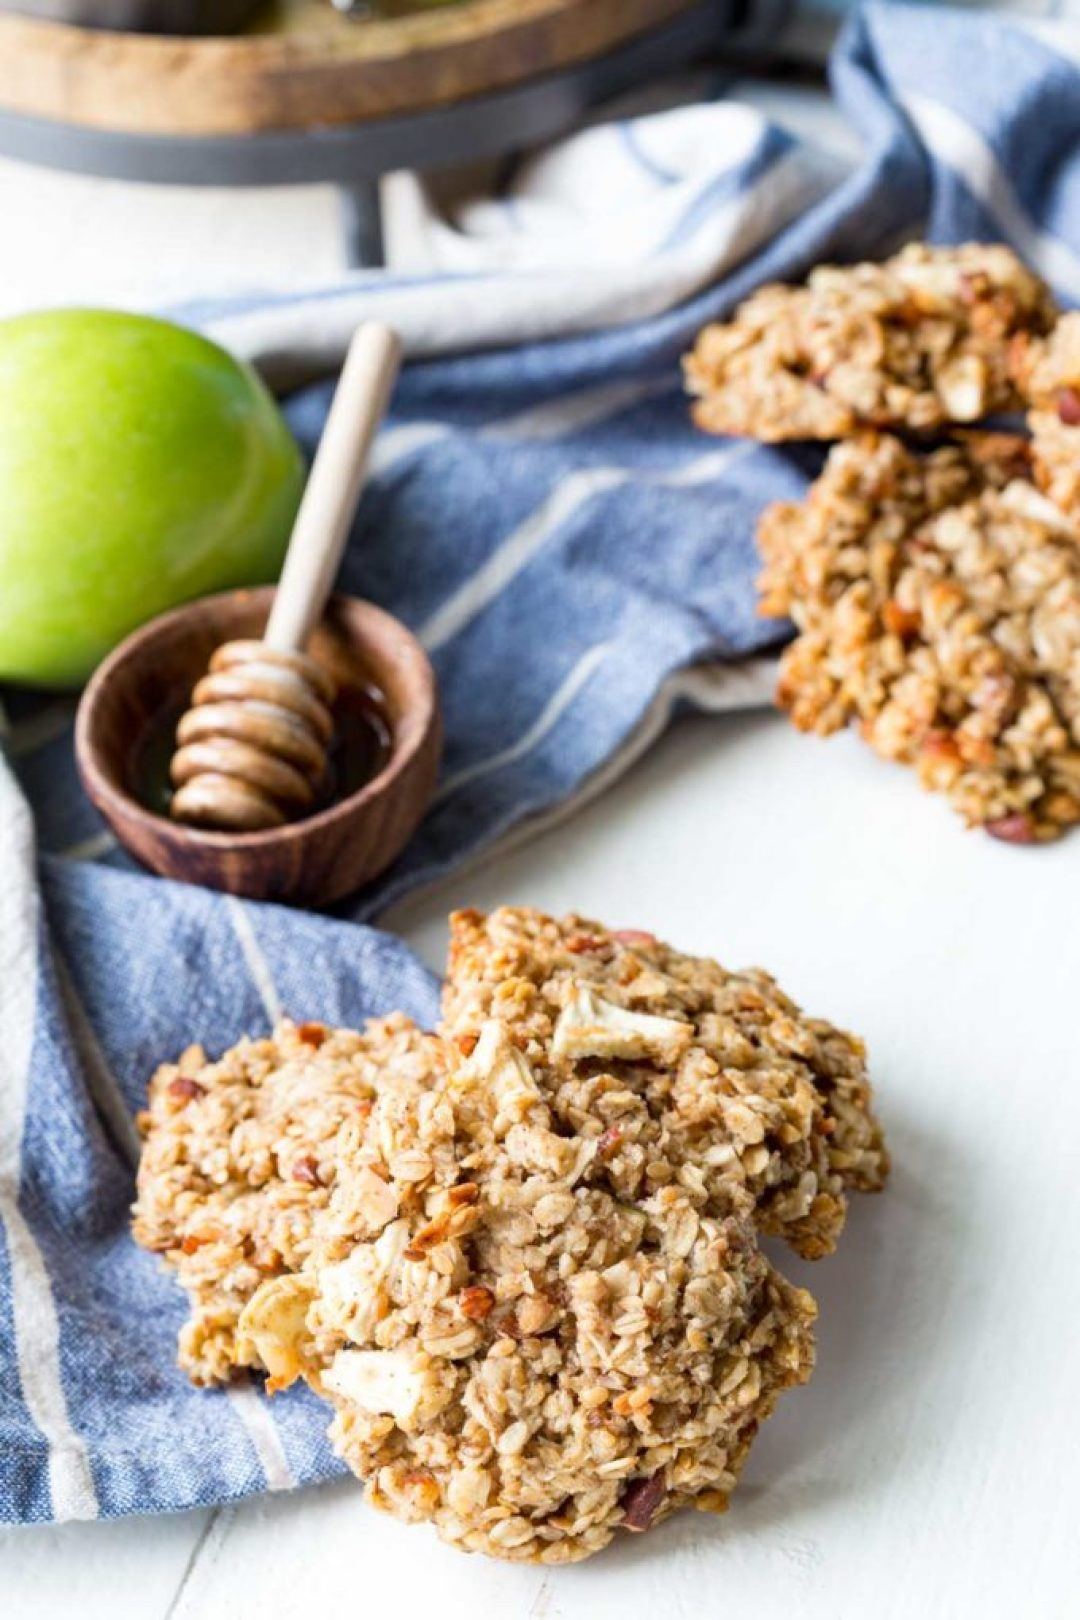 Apple pie breakfast cookies made with protein for a healthy, filling breakfast that tastes like a treat